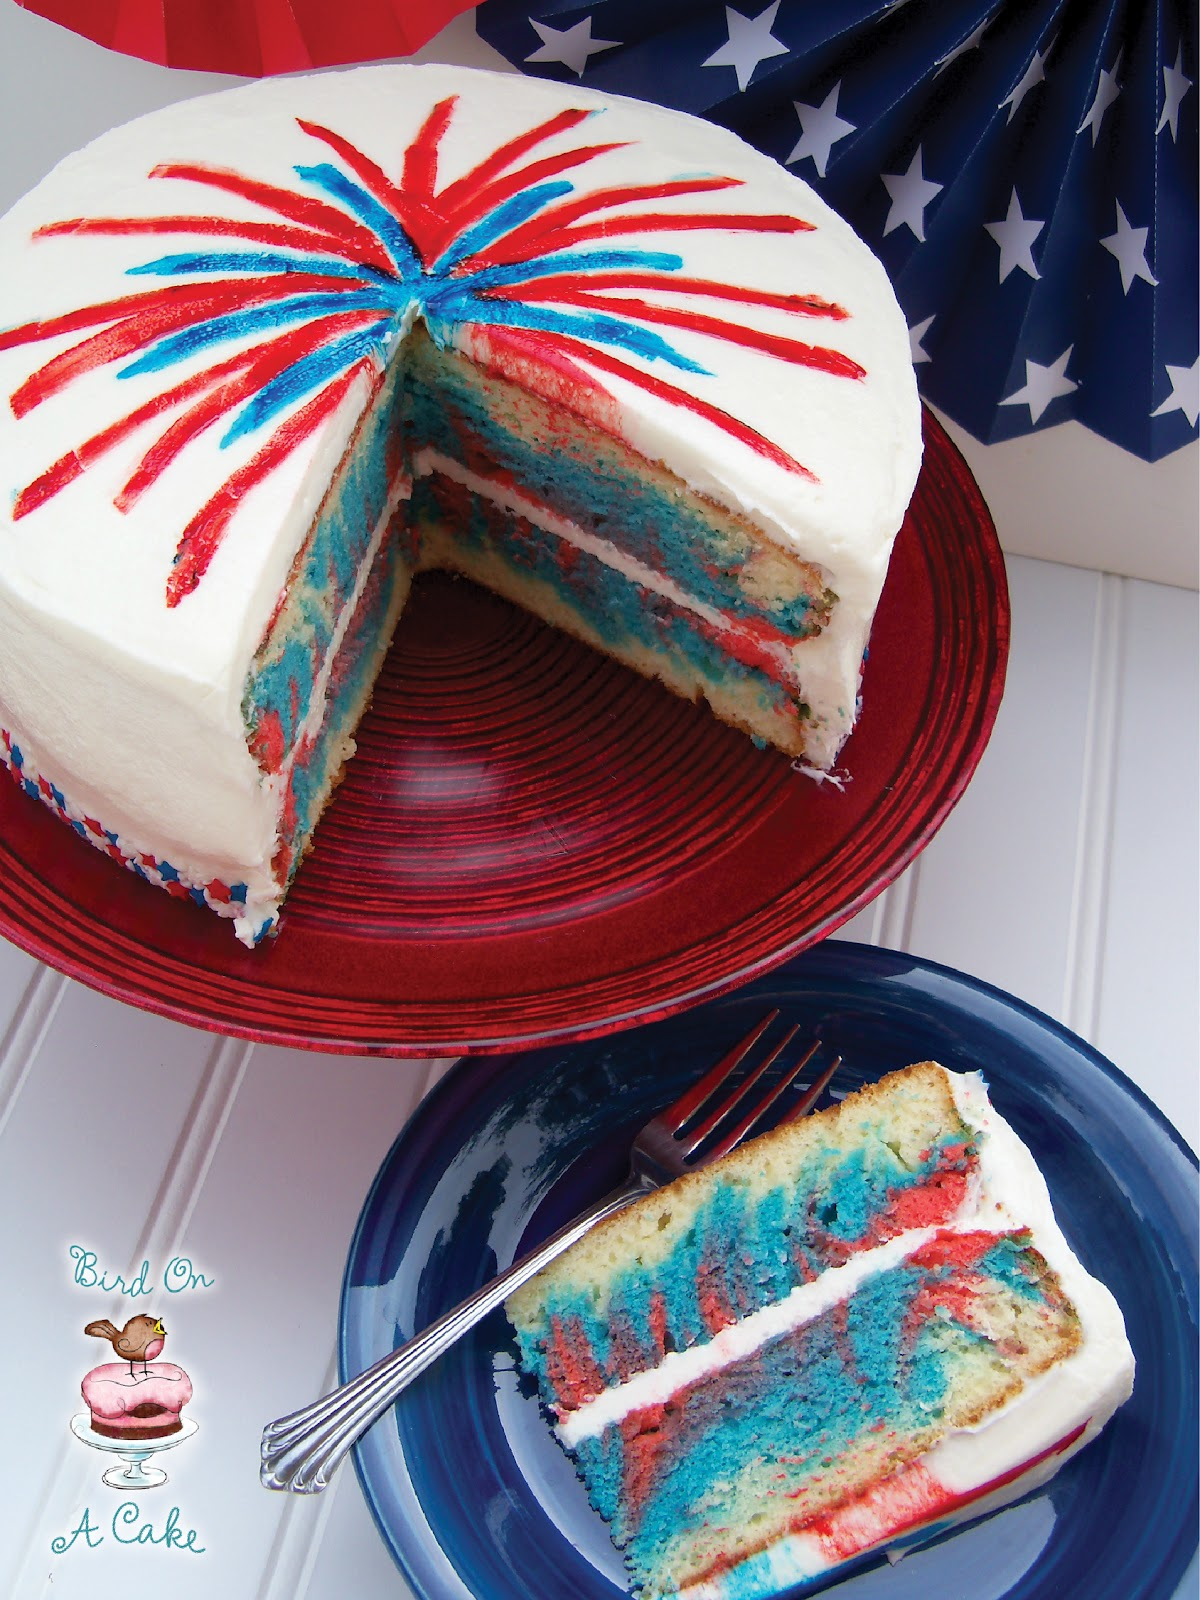 bird on a cake 4th of july fireworks cake